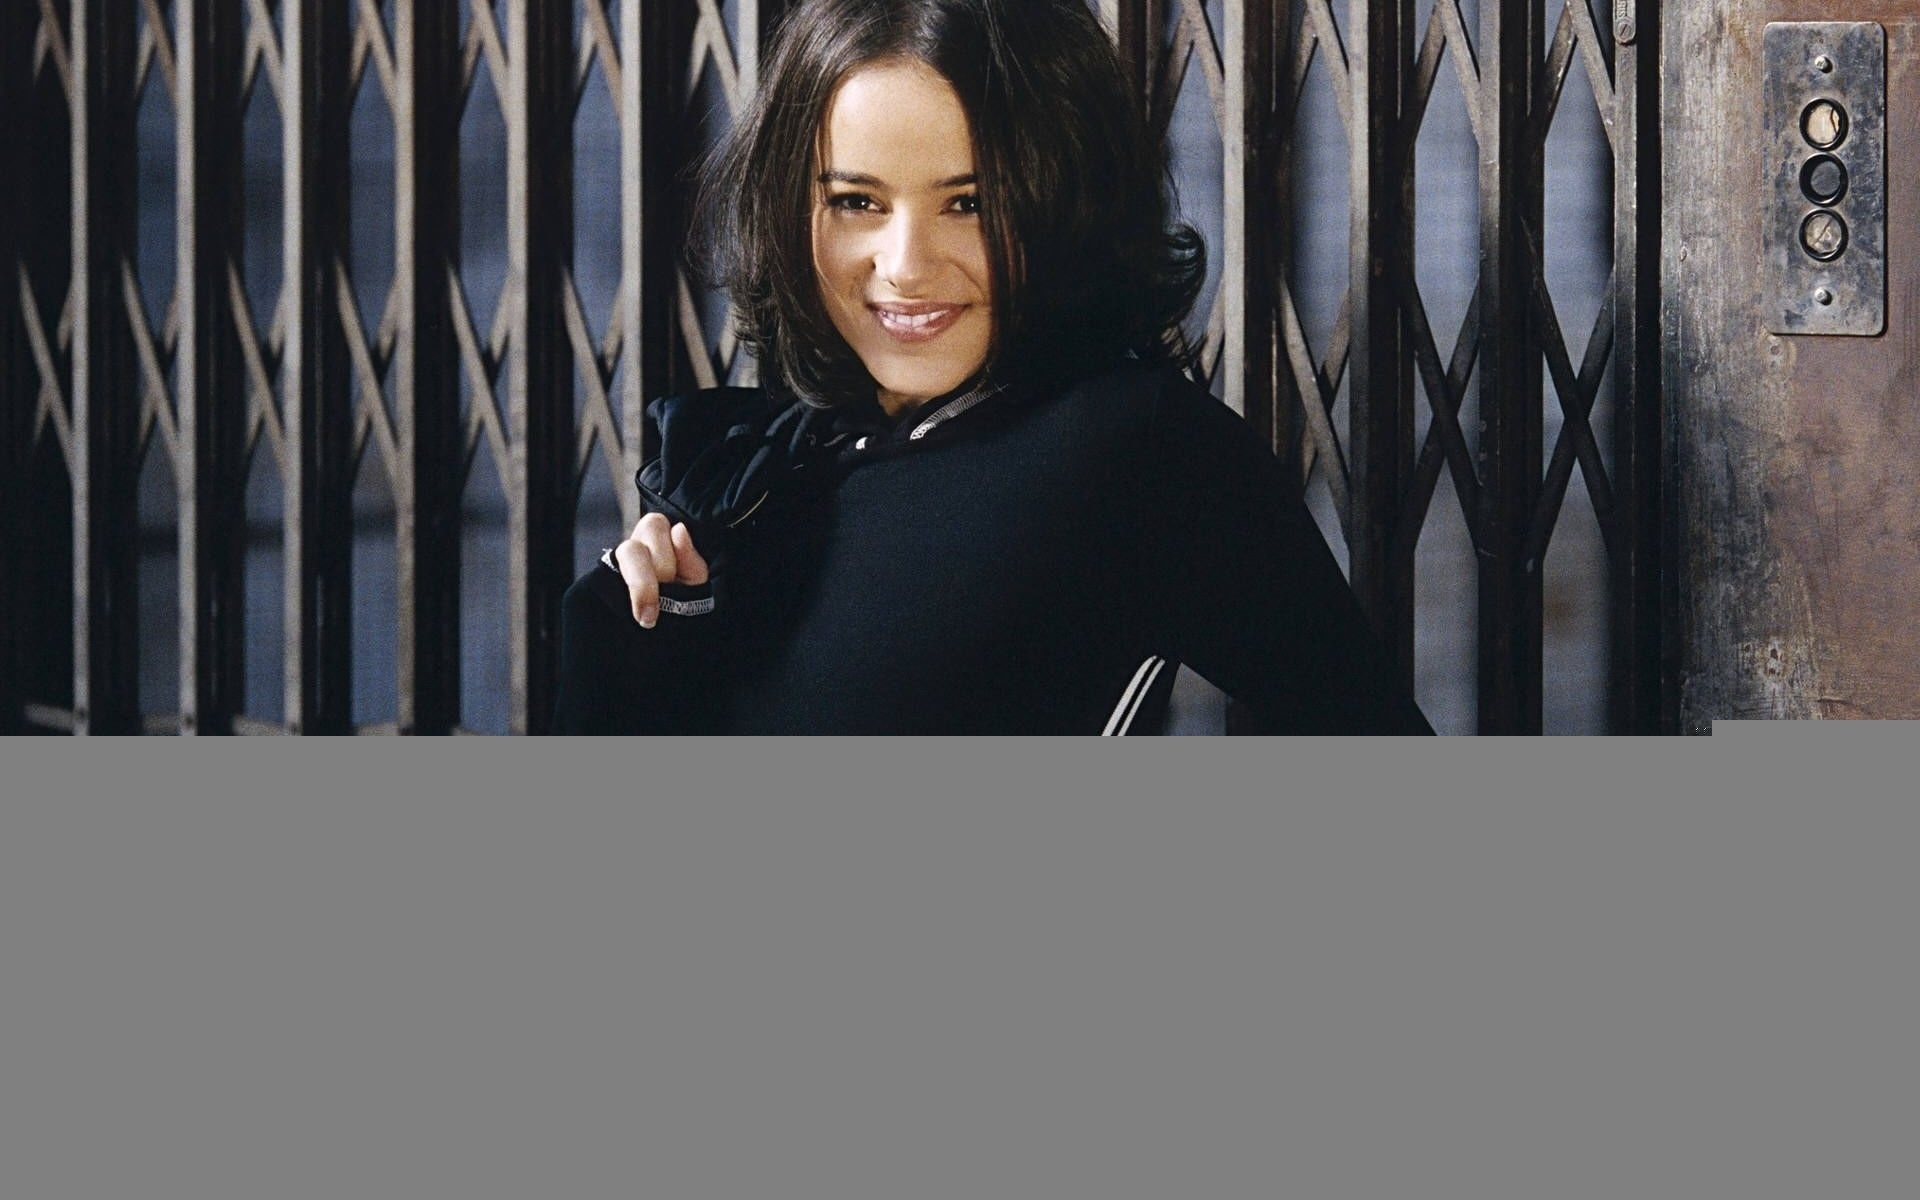 Alizée elevators singers French HD Wallpaper